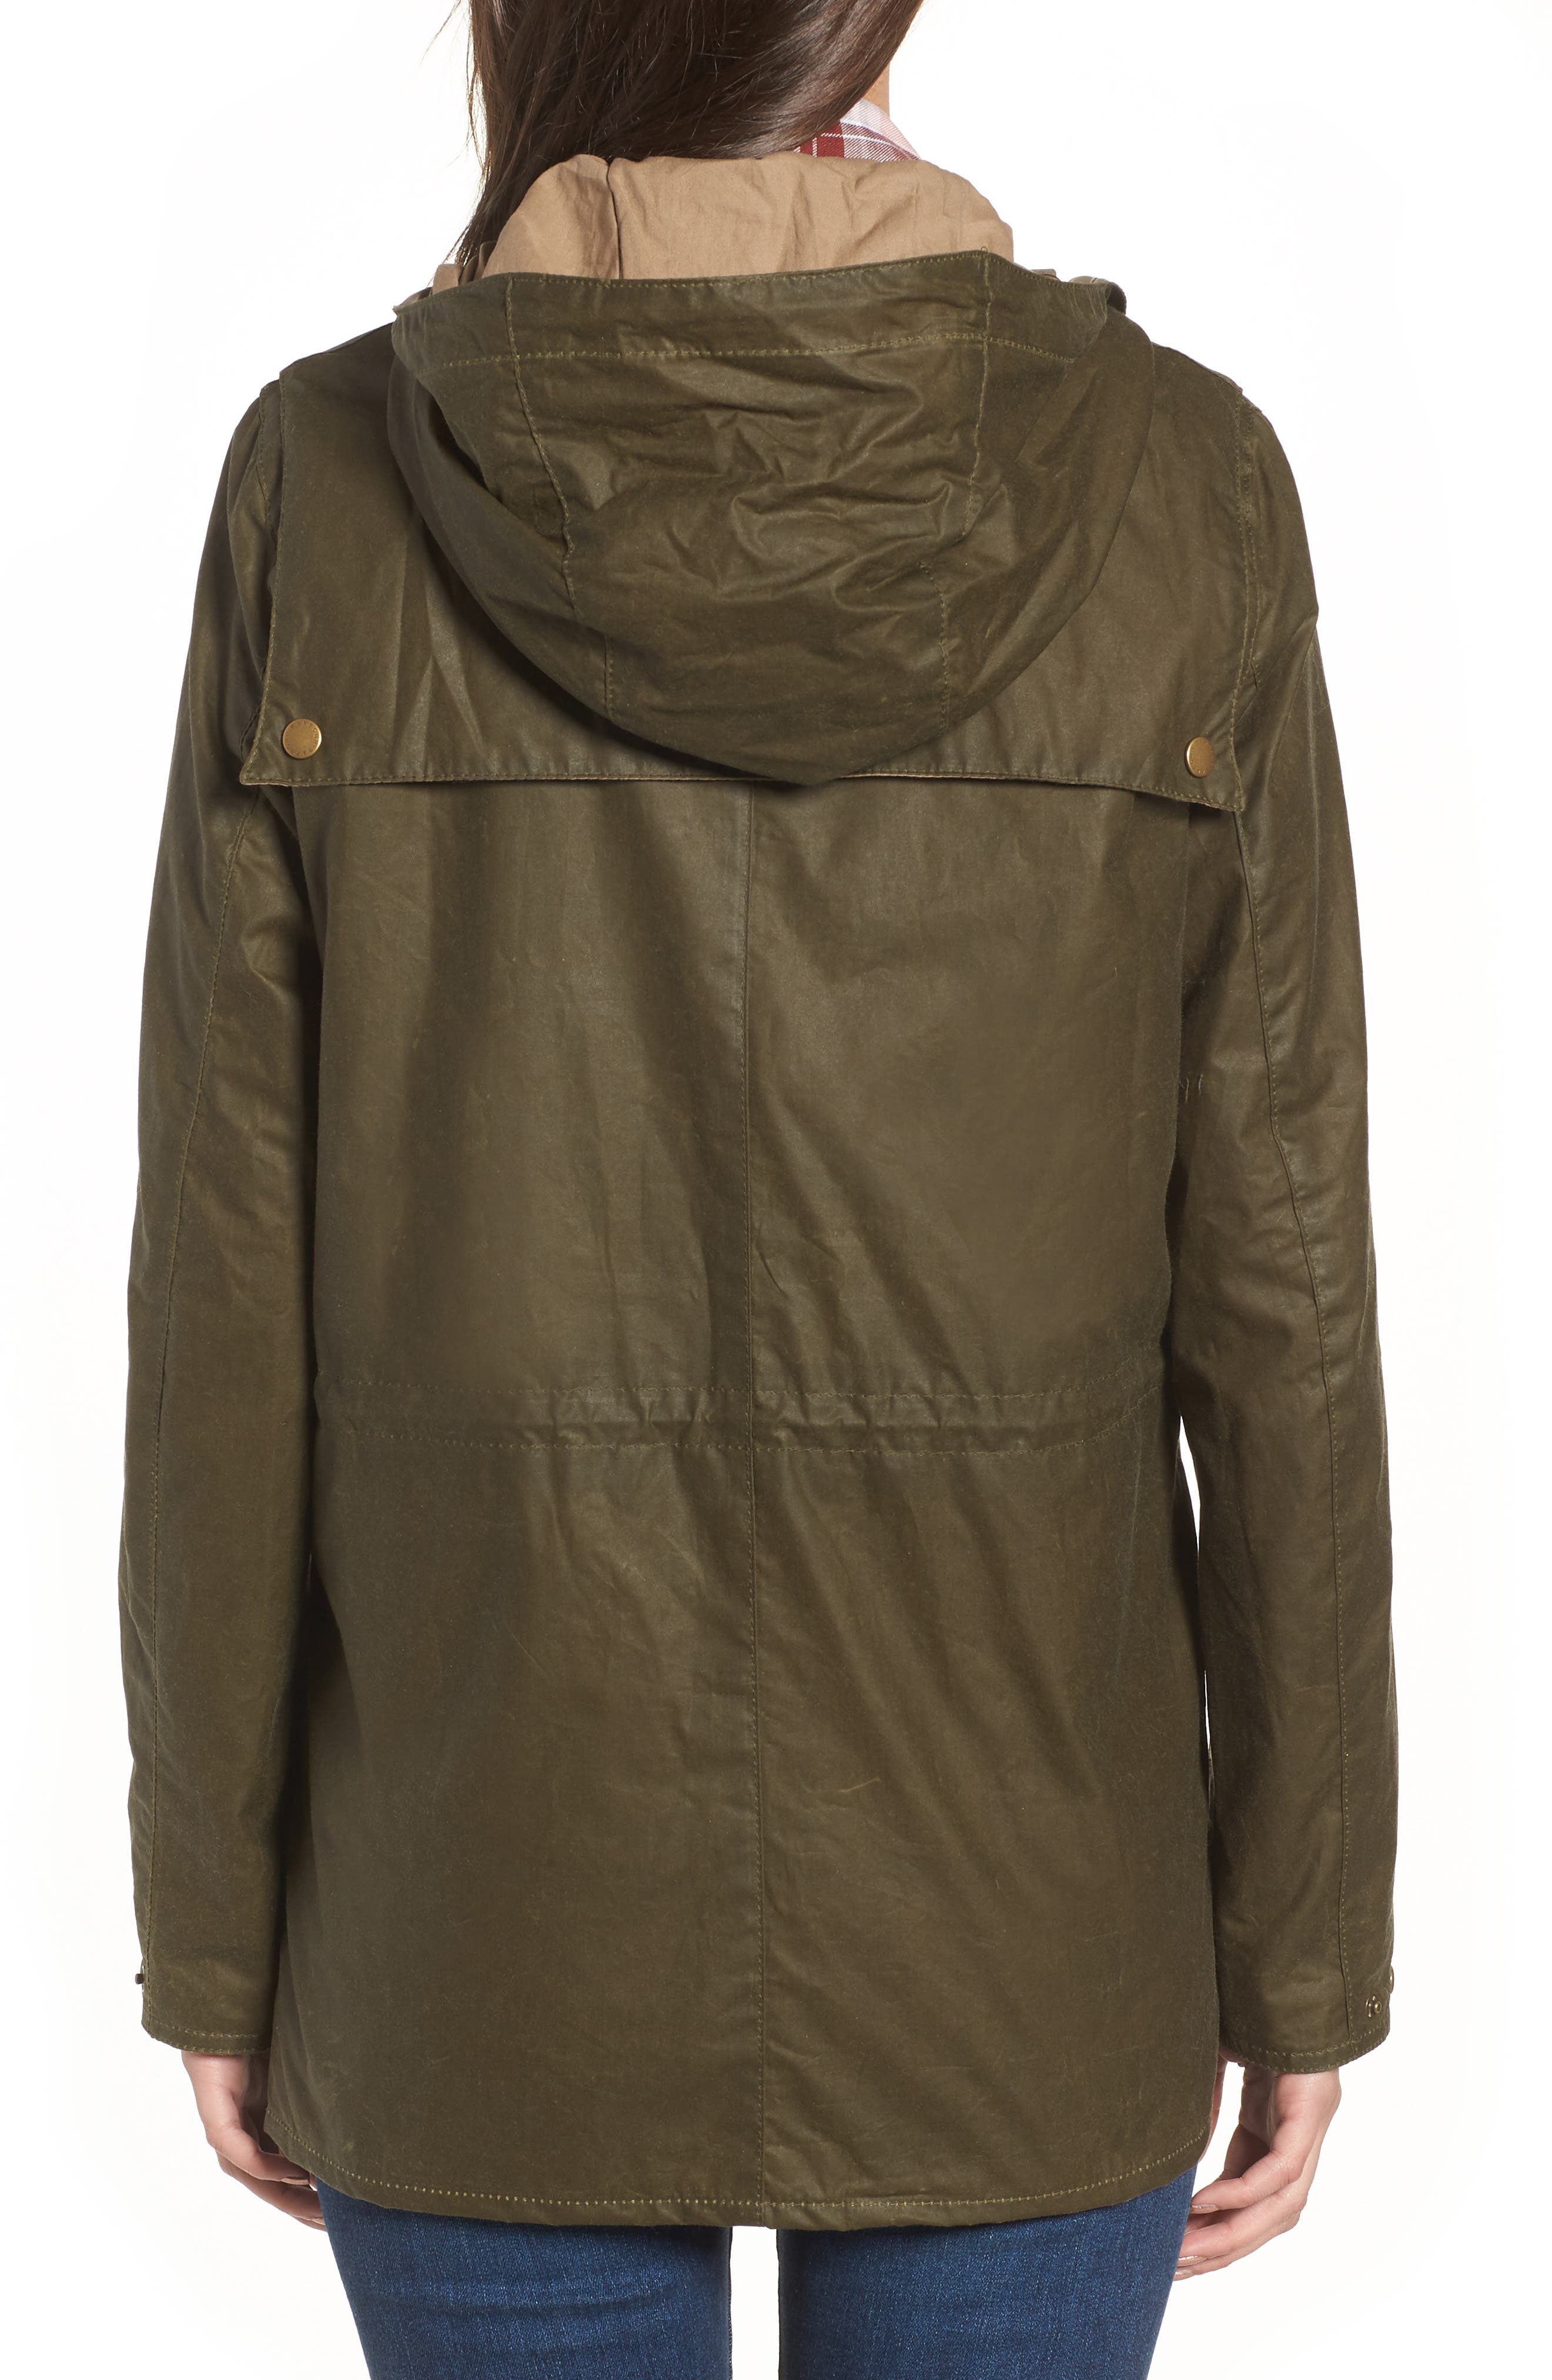 Durham Lightweight Wax Cotton Jacket,                             Alternate thumbnail 3, color,                             Archive Olive